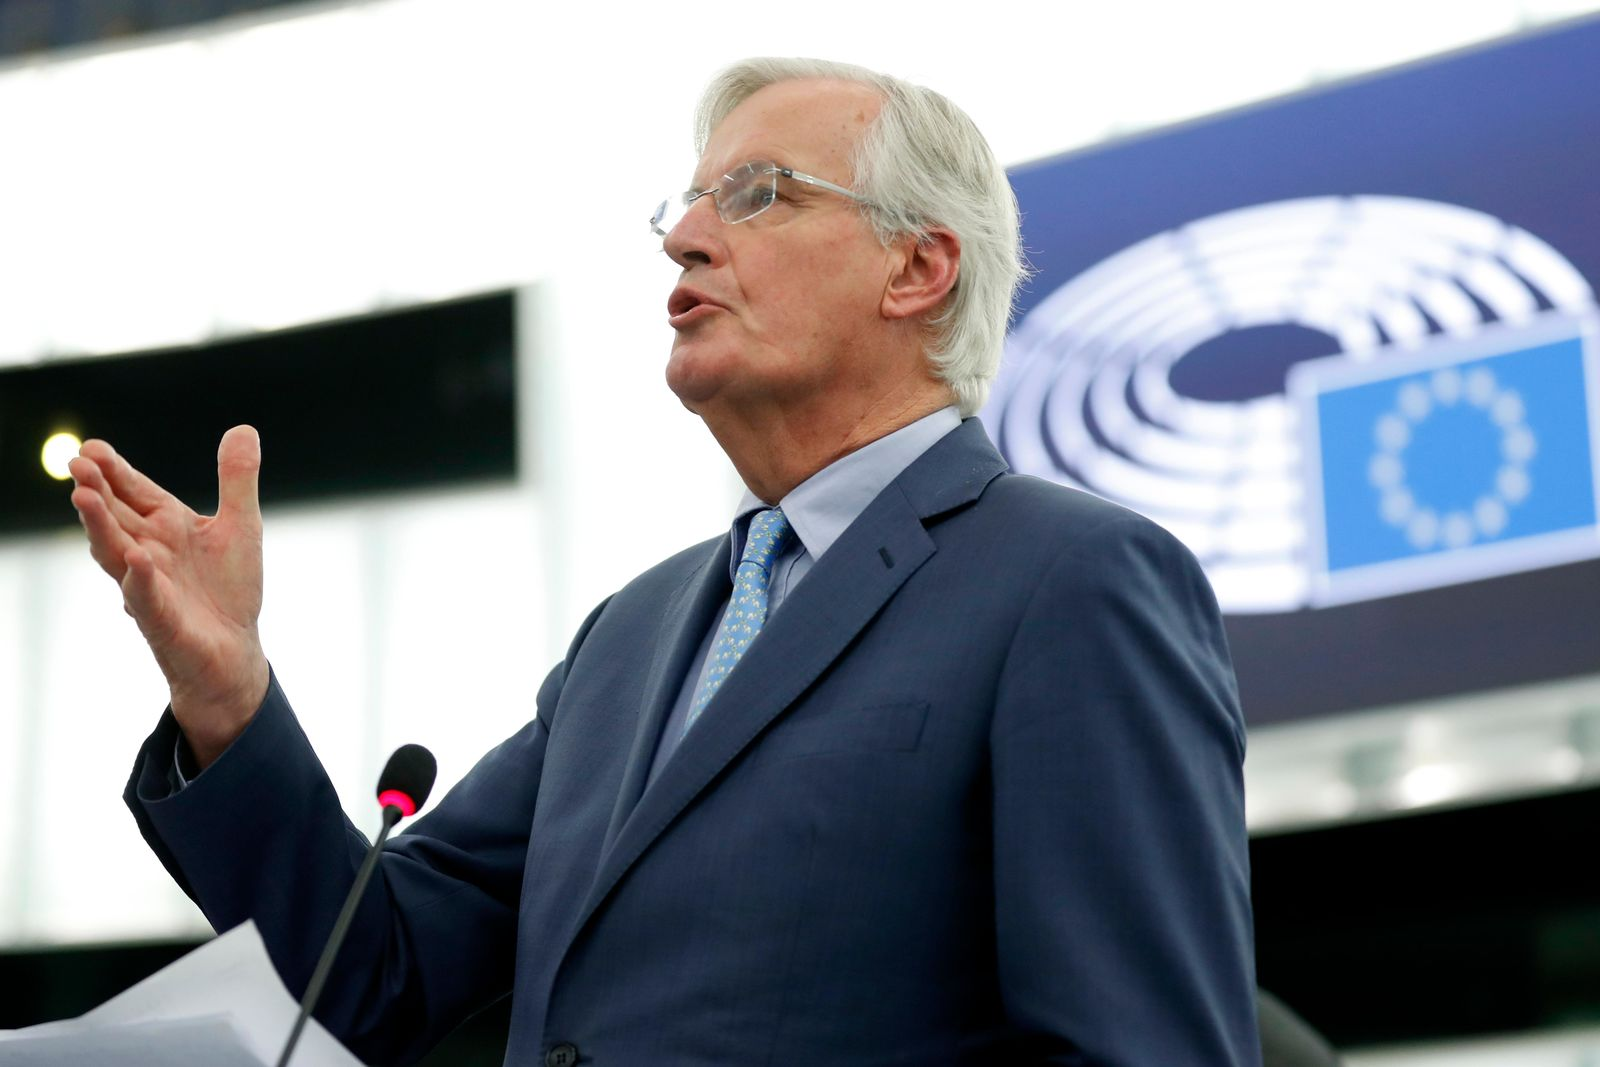 European Union chief Brexit negotiator Michel Barnier delivers his speech Tuesday, Oct. 22, 2019 at the European Parliament in Strasbourg, eastern France.{ } (AP Photo/Jean-Francois Badias)